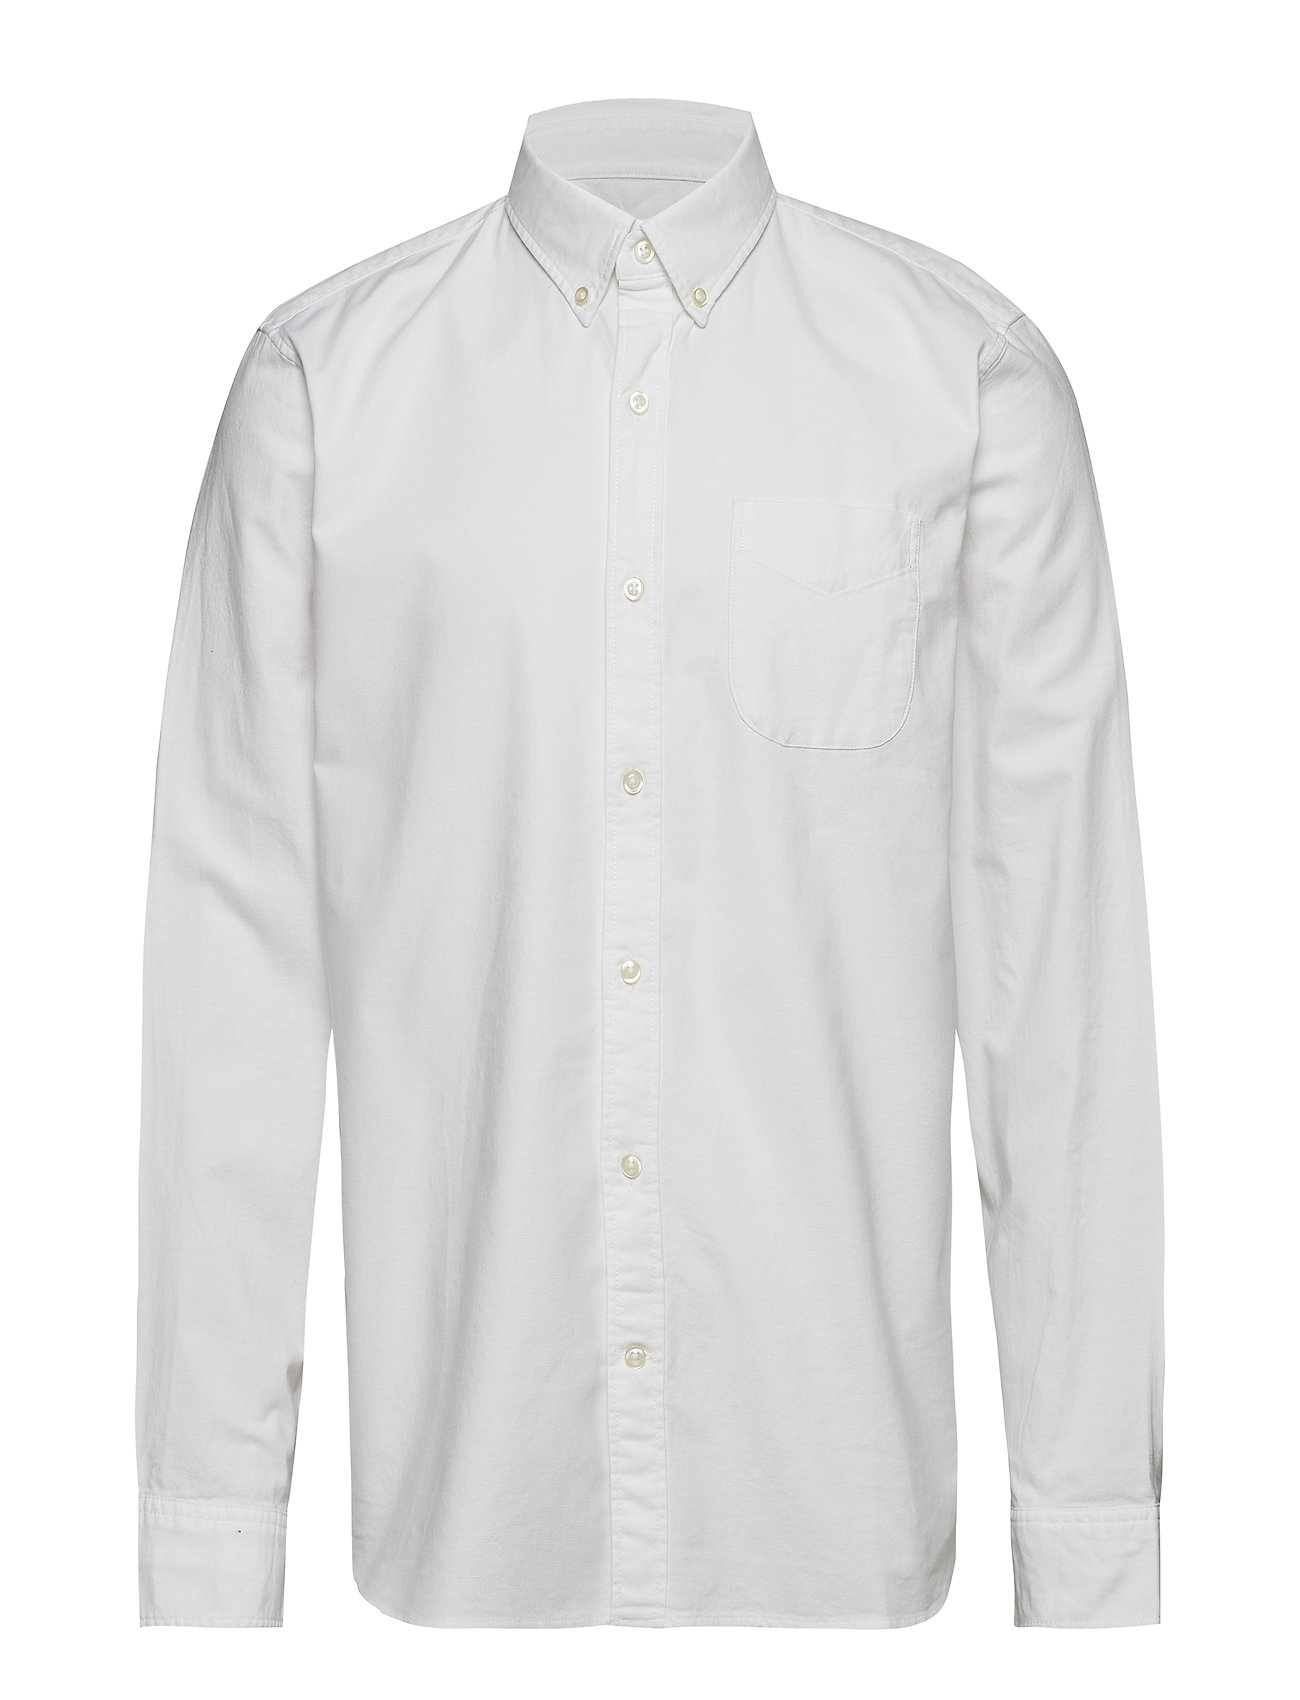 GAP OXFORD SHIRTS Ögrönlar